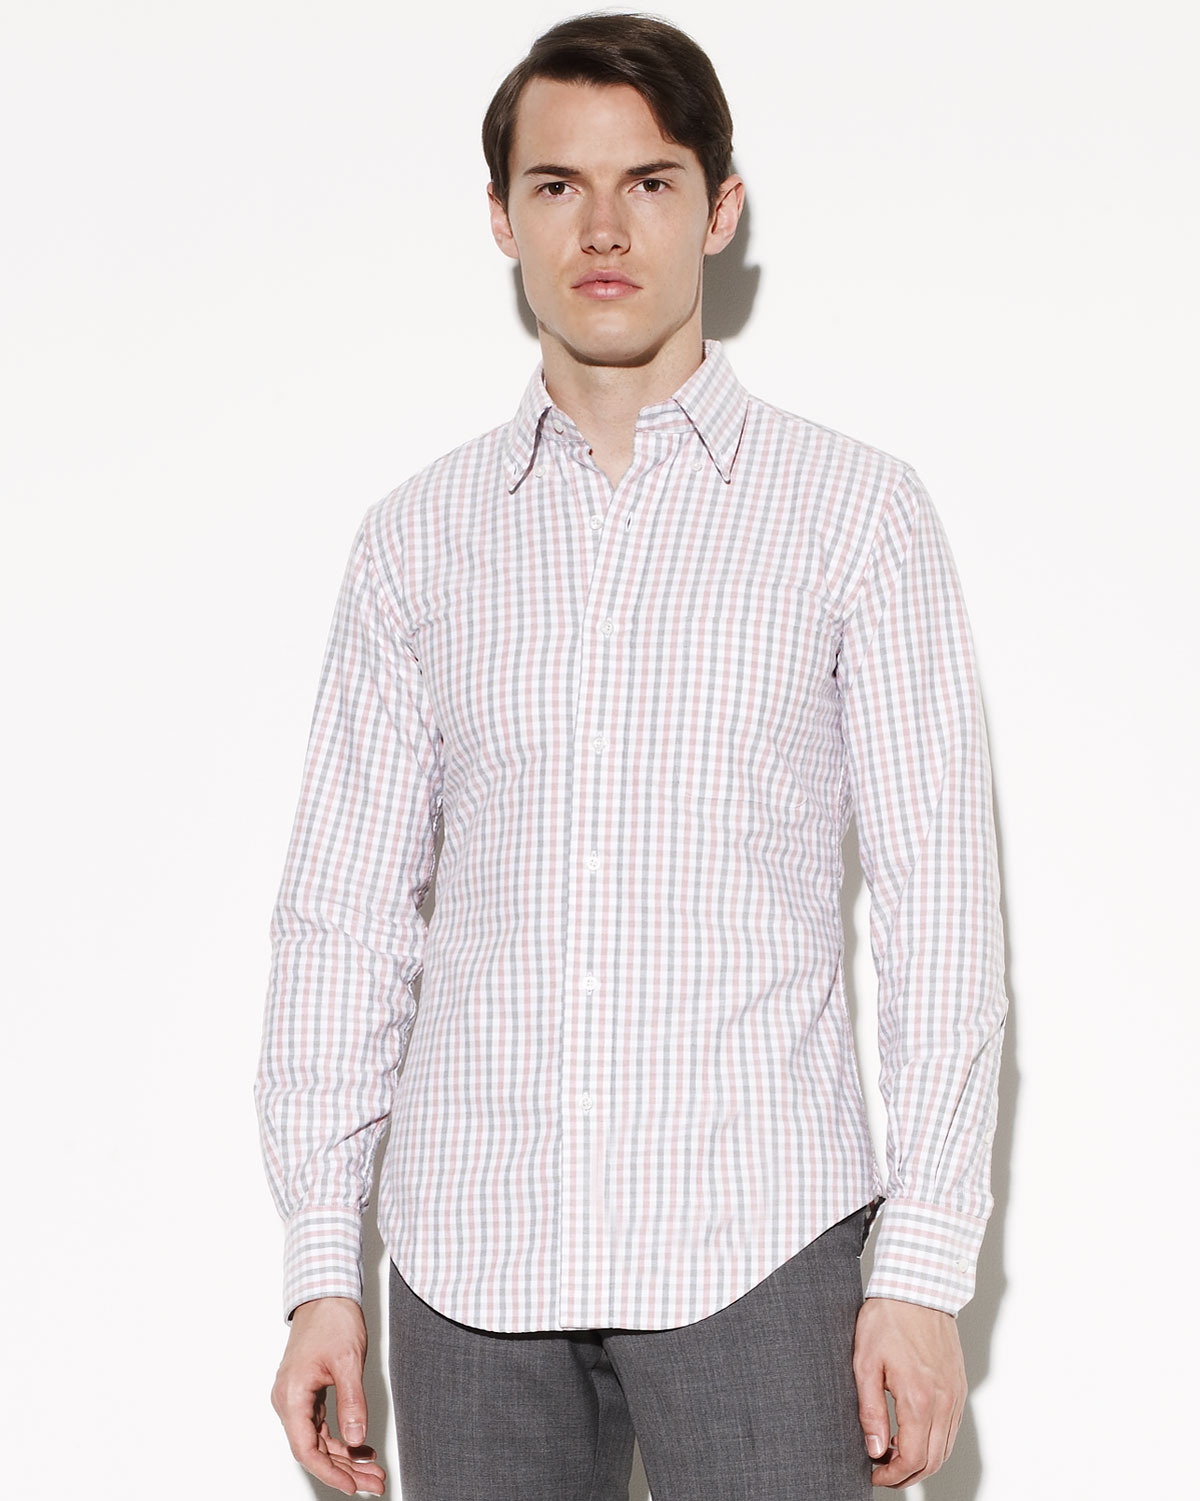 Thom browne button down gingham shirt in gray for men for Mens grey button down dress shirt